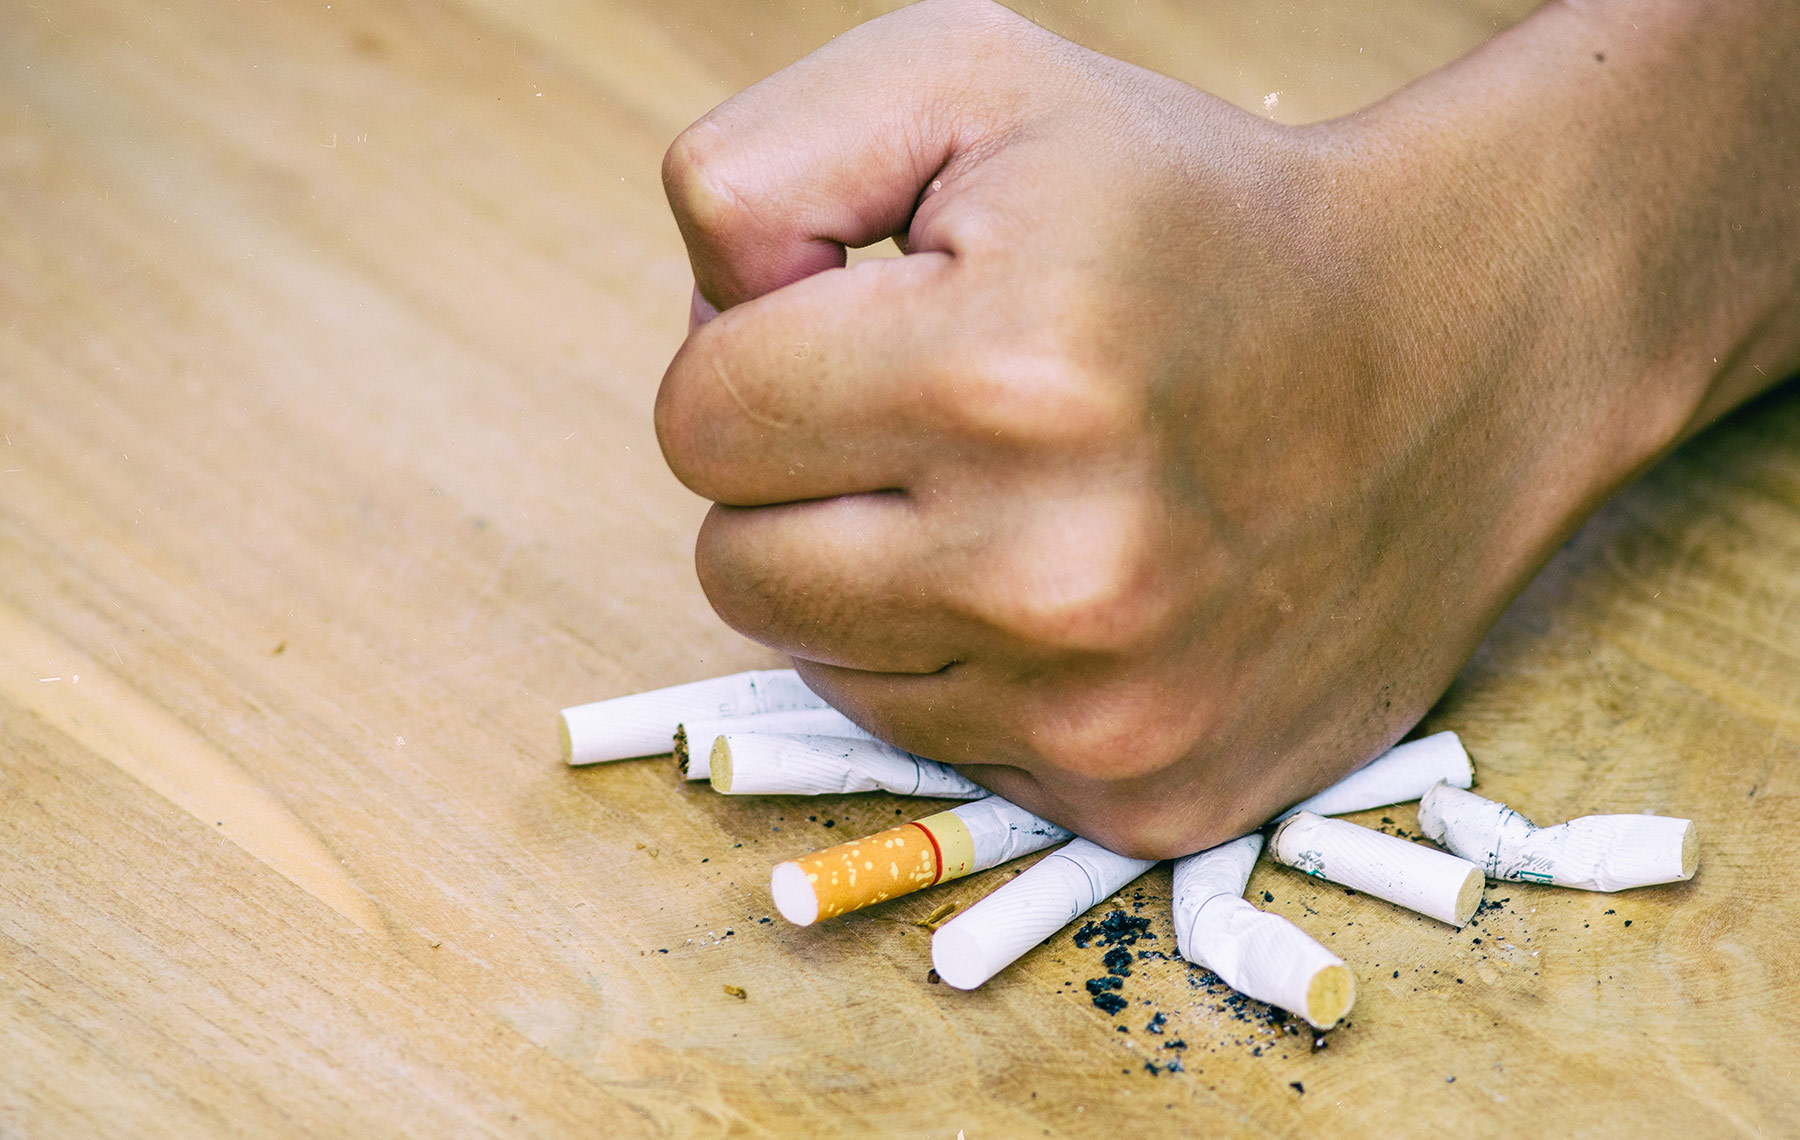 Male hand destroying cigarettes